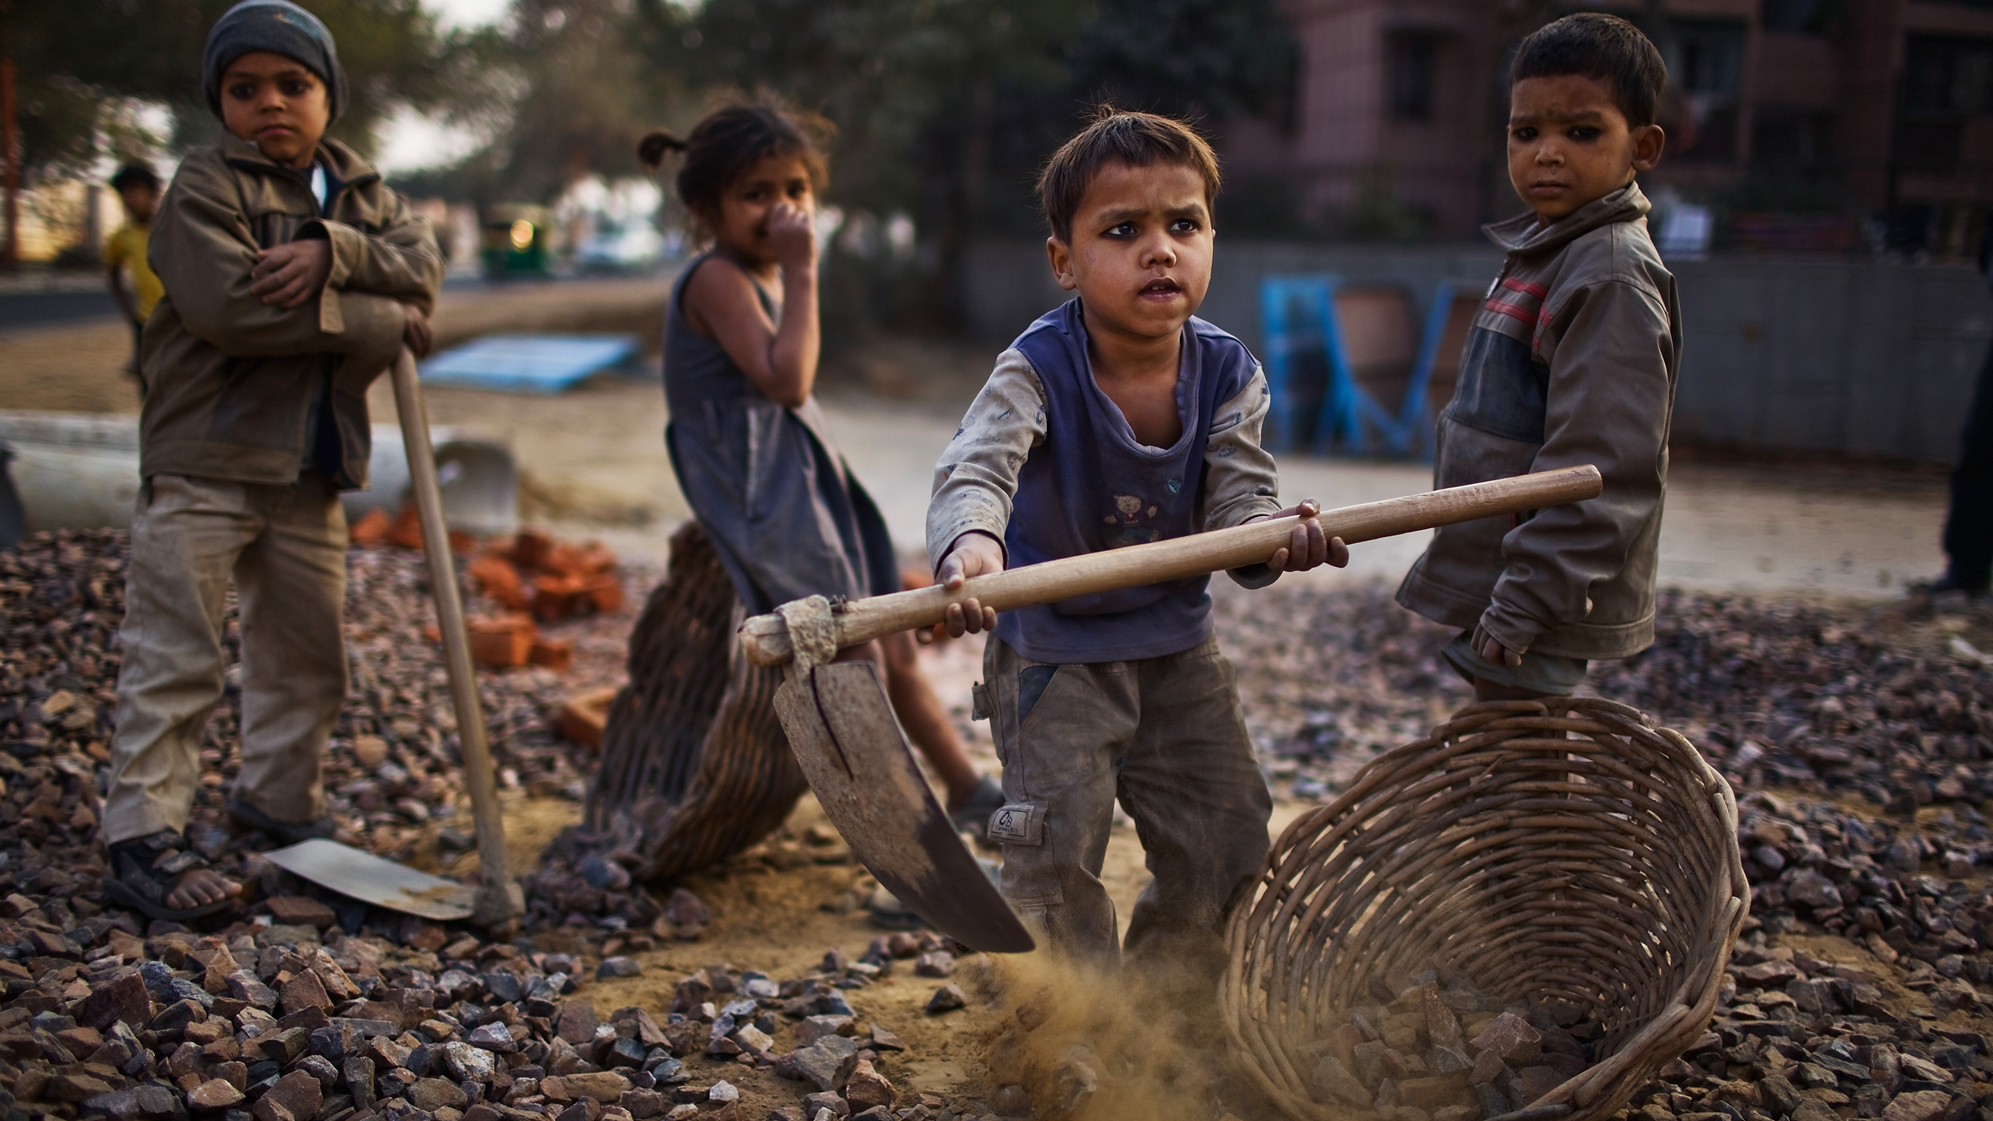 nobel laureate kailash satyarthi aims to eliminate child labor wshu